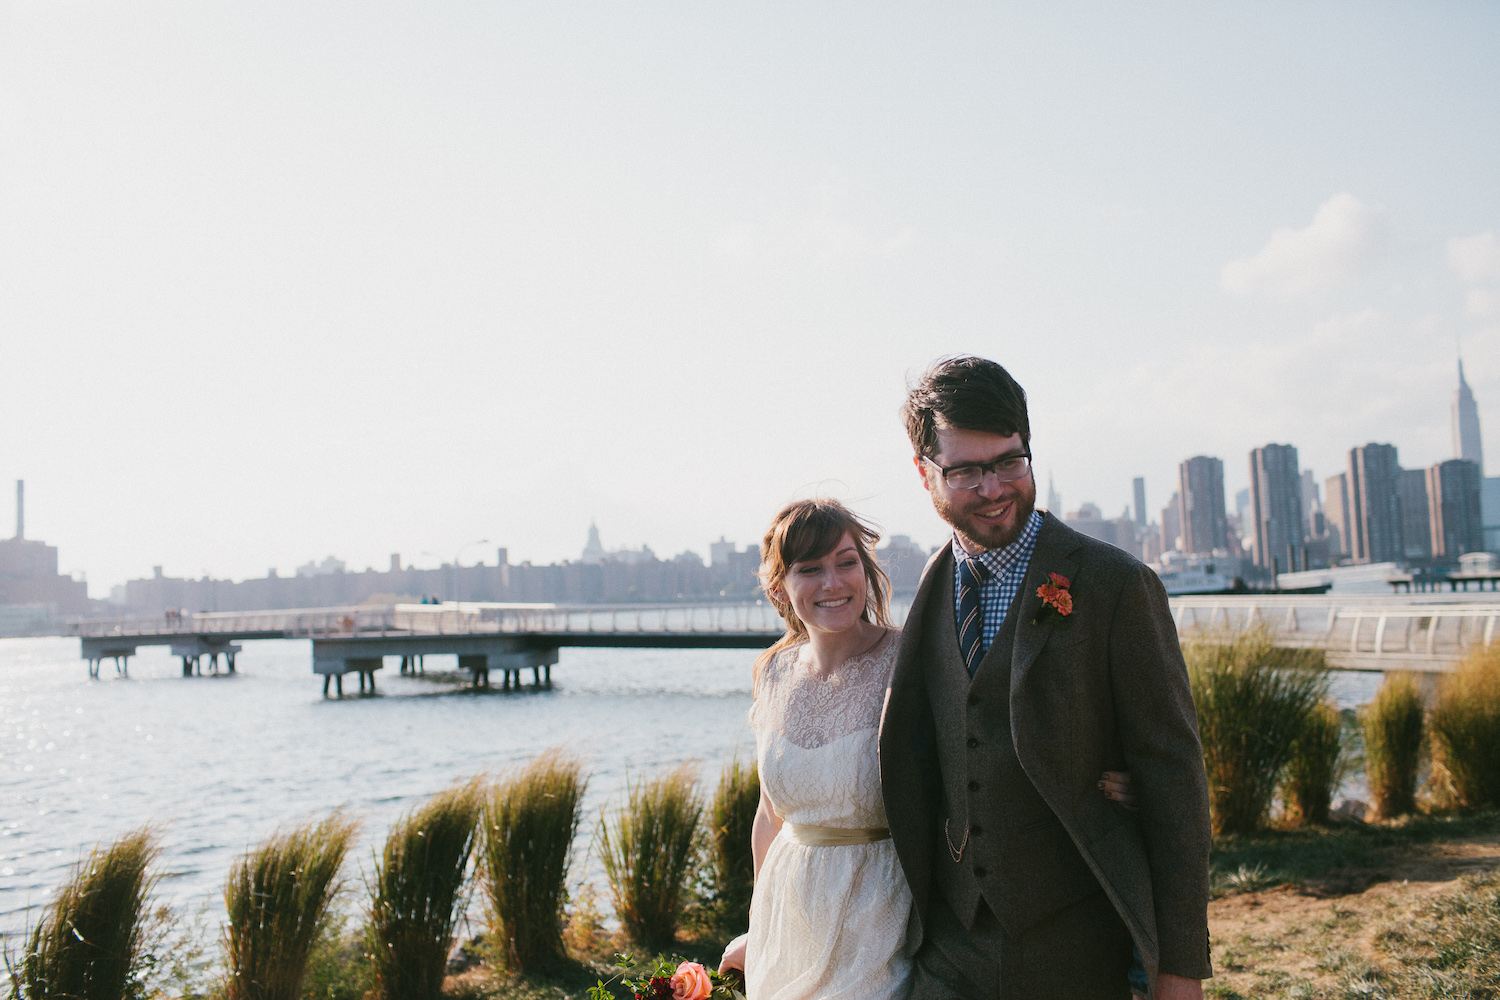 Full Aperture Floral & Corey Torpie Photography  - Brooklyn Wedding - 64.jpeg